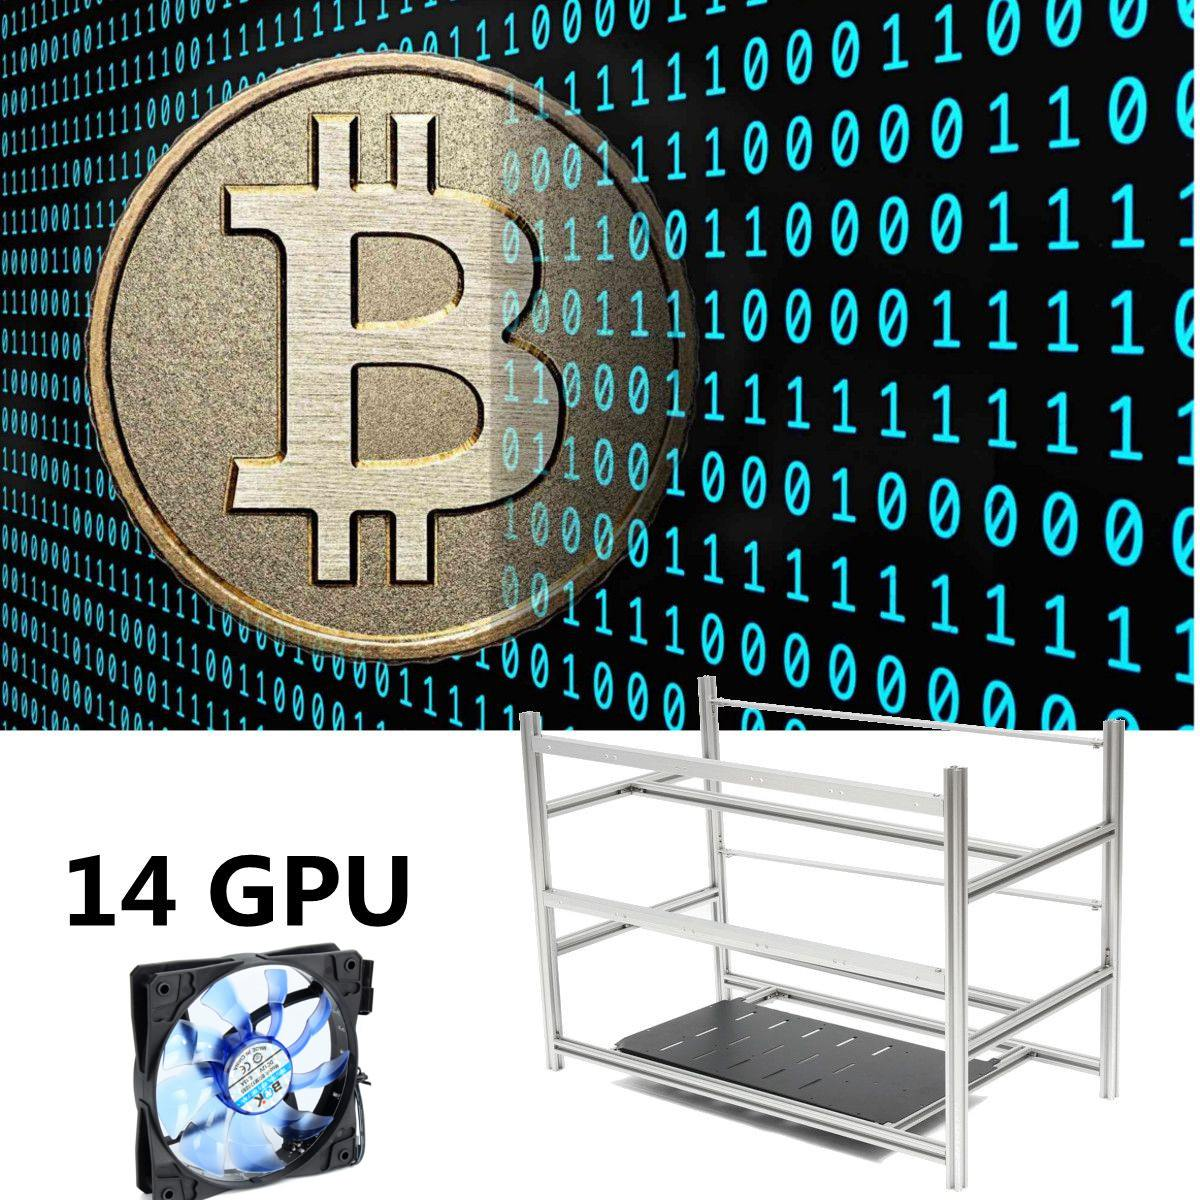 Stackable Open Air Mining Rig Frame Miner Case + 10 LED Fans For 14 GPU ETC BTH New Computer Mining Case Frame Server ChassisStackable Open Air Mining Rig Frame Miner Case + 10 LED Fans For 14 GPU ETC BTH New Computer Mining Case Frame Server Chassis